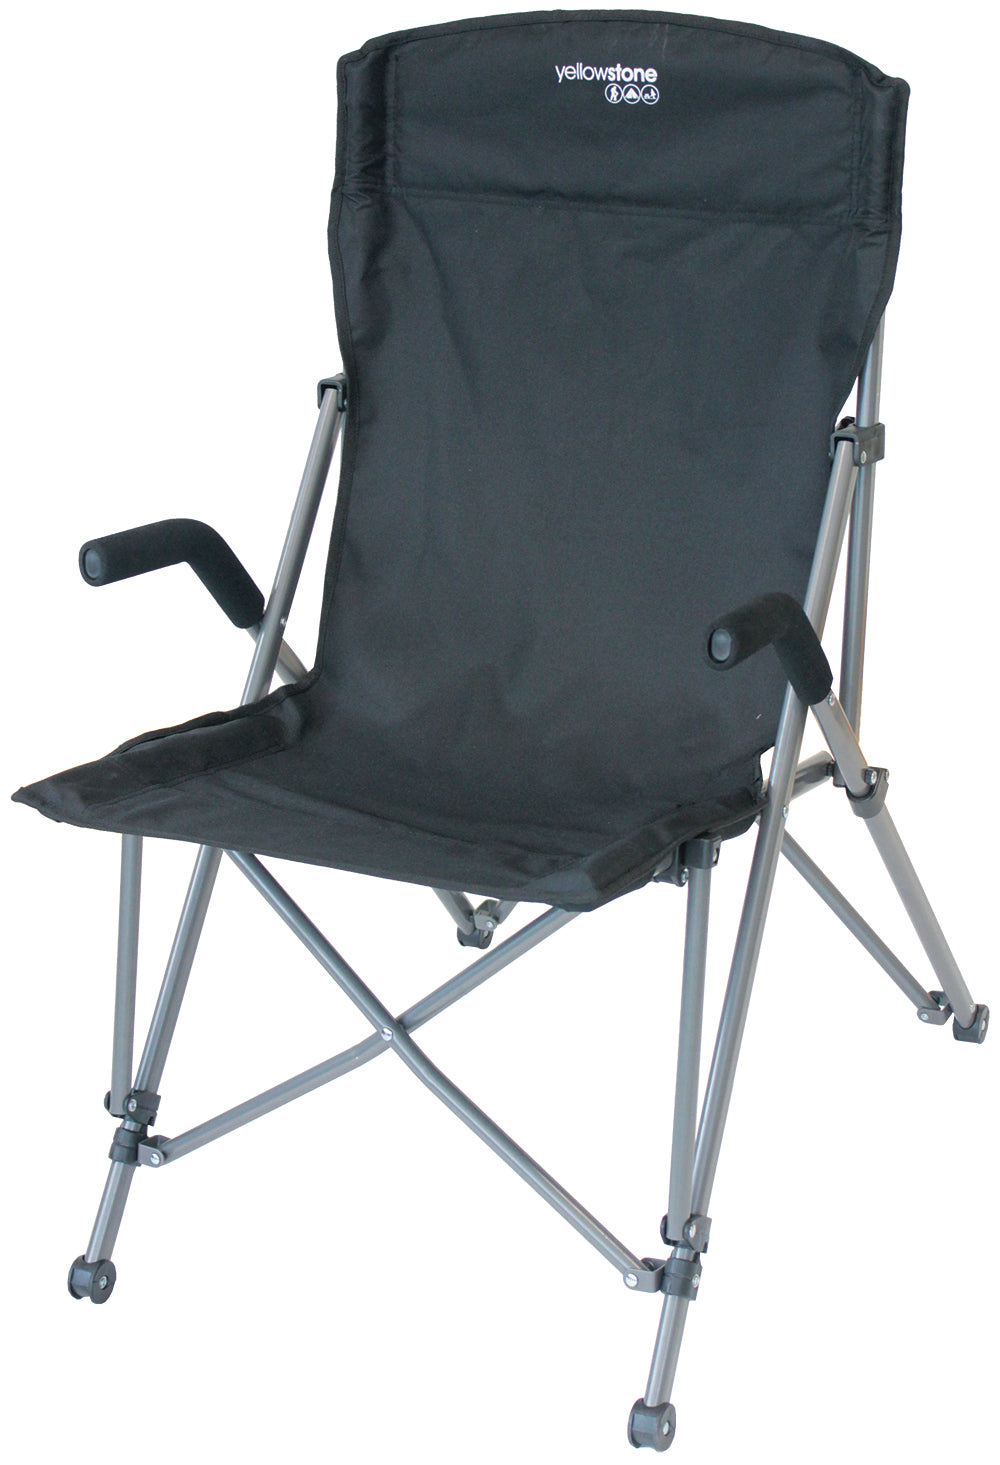 Yellowstone Ranger Camping Chair